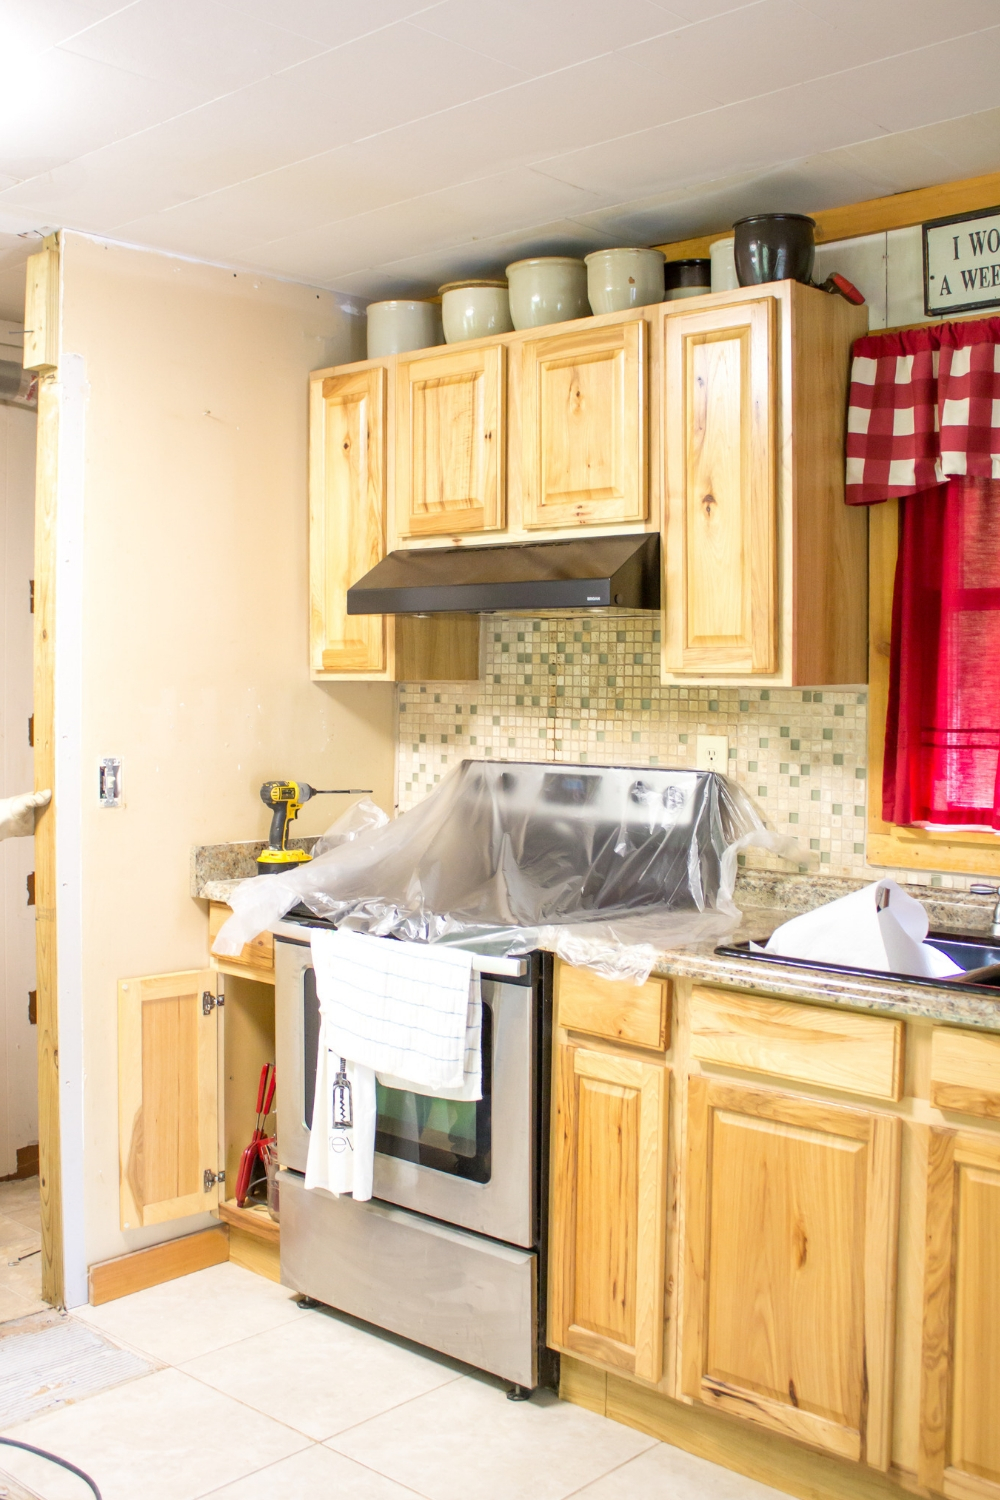 Our Kitchen Remodel (Warning Images Maybe Unsuitable for anyone under the age of 50)